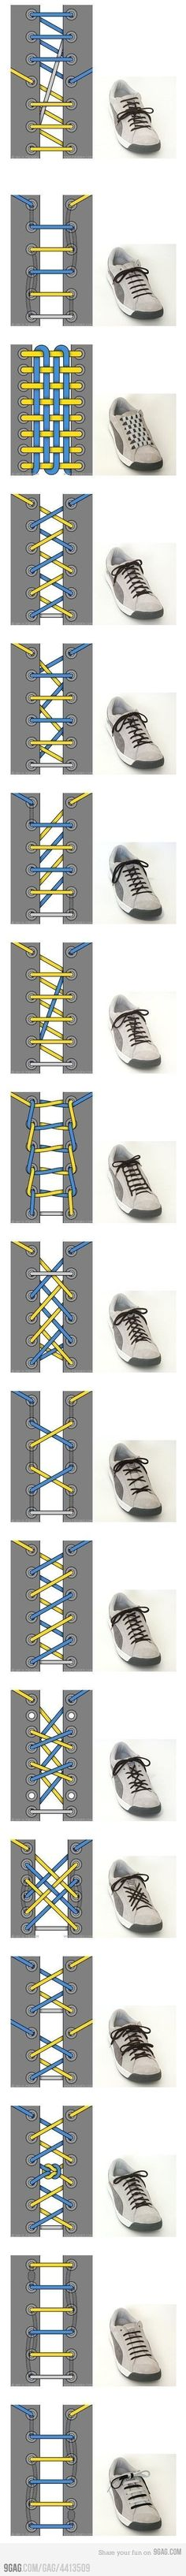 Good reference for new ways to tie shoelaces